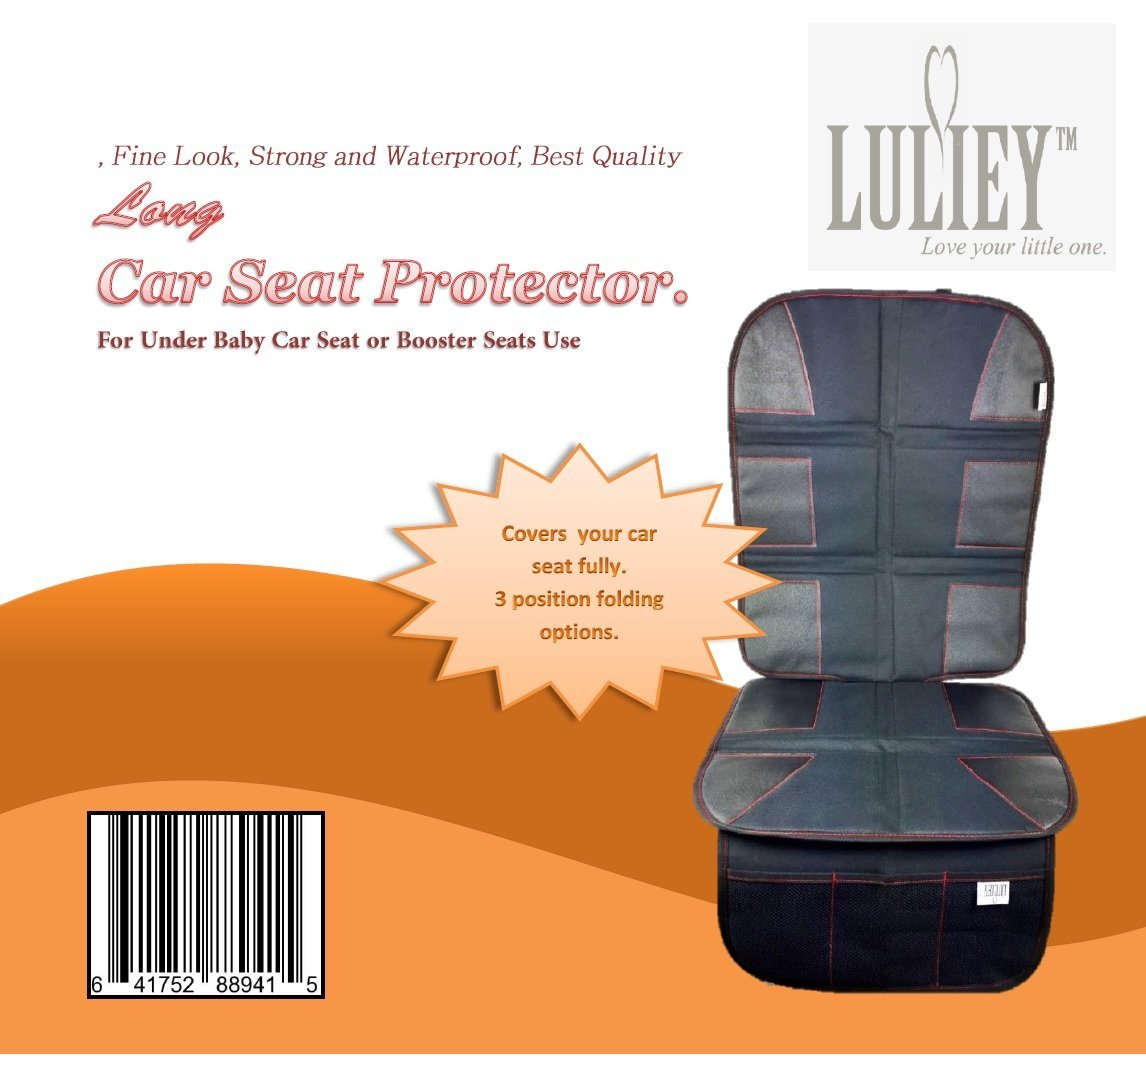 PREMIUM OXFORD Luxury Car Seat Protector - Durable 600D OXFORD Material, Black Leather by Luliey (Image #2)